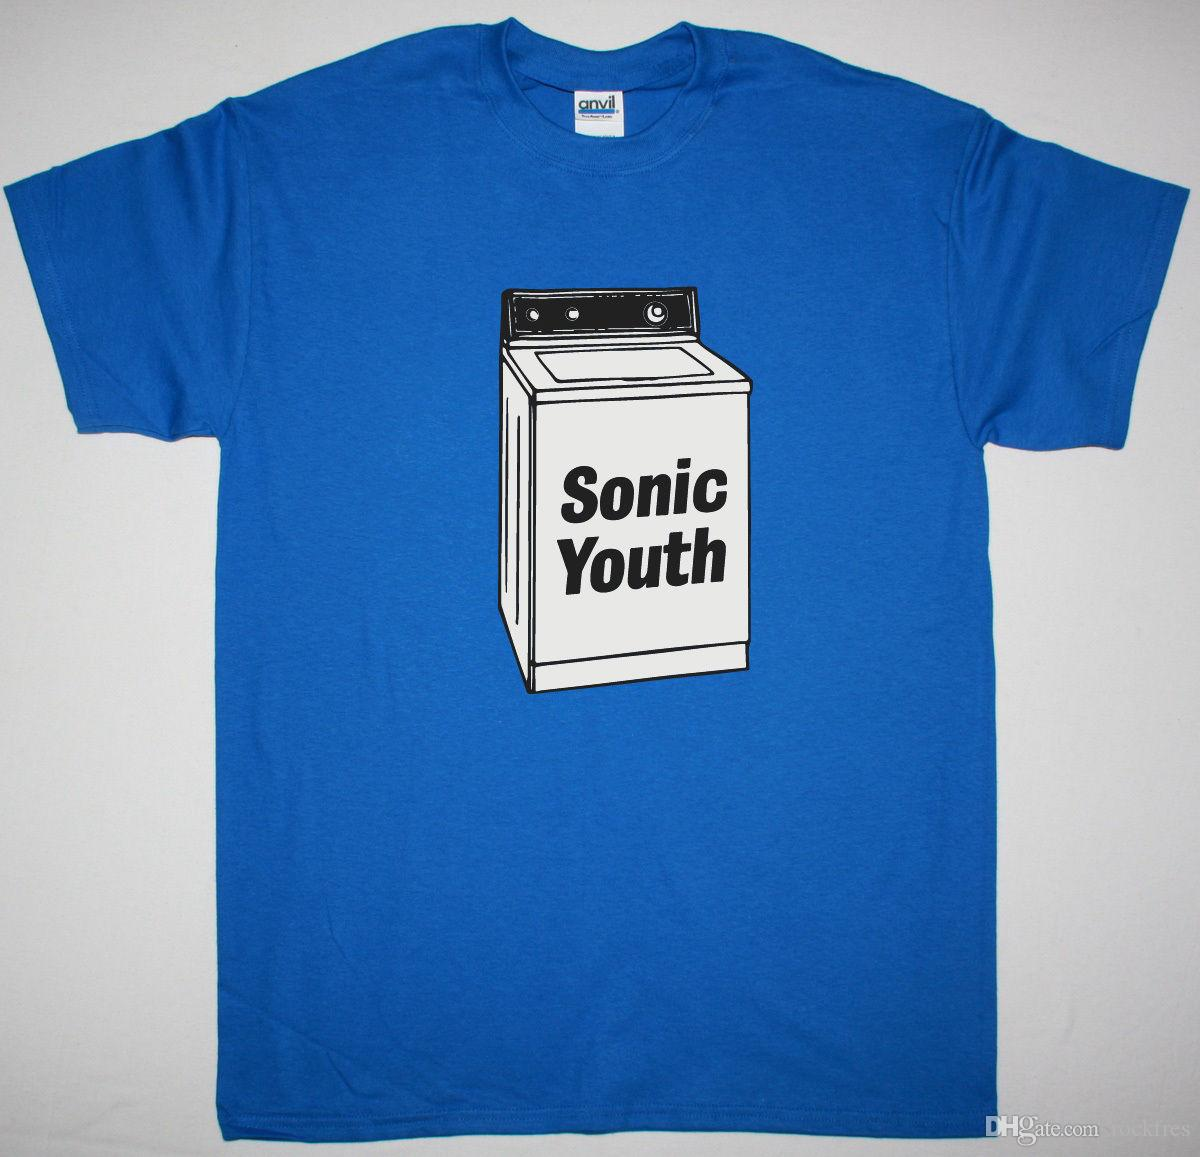 357e33a2 SONIC YOUTH WASHING MACHINE BLUE MENS T SHIRT ALTERNATIVE ROCK POST PUNK  INDIE Different T Shirts Day Shirt From Rockfres, $10.19| DHgate.Com